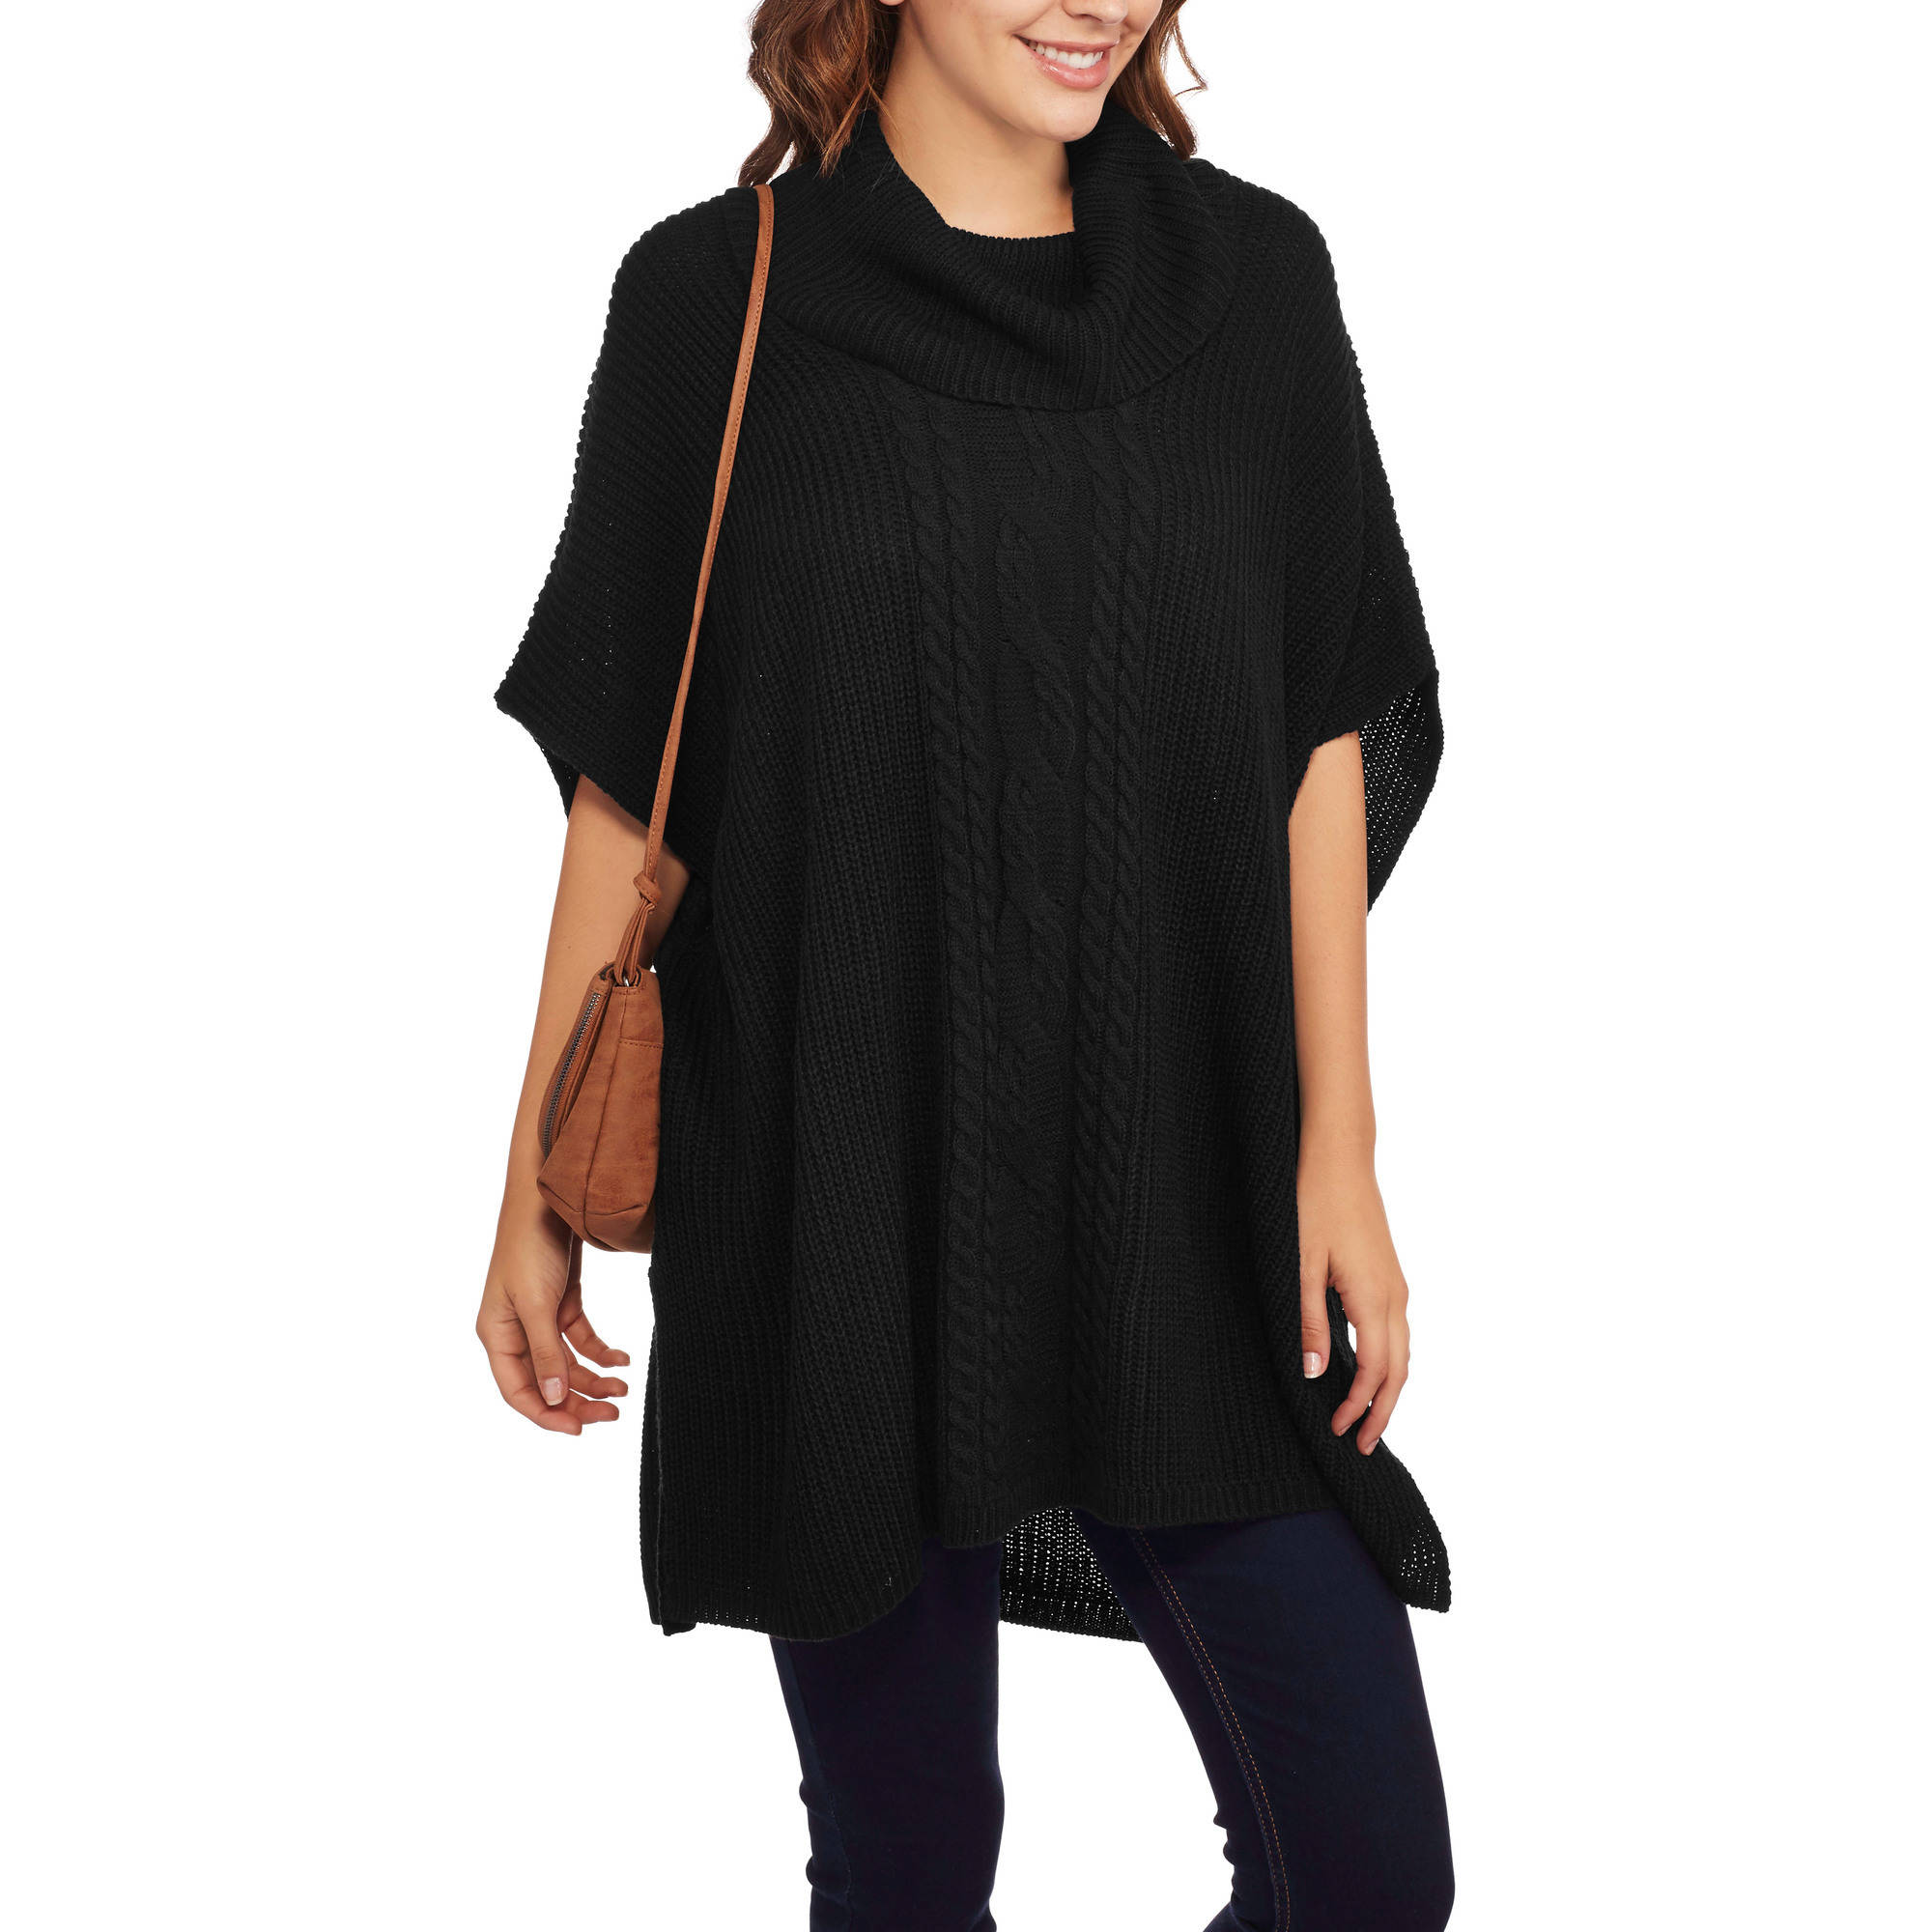 Faded Glory Women's Cowl Neck Poncho Sweater